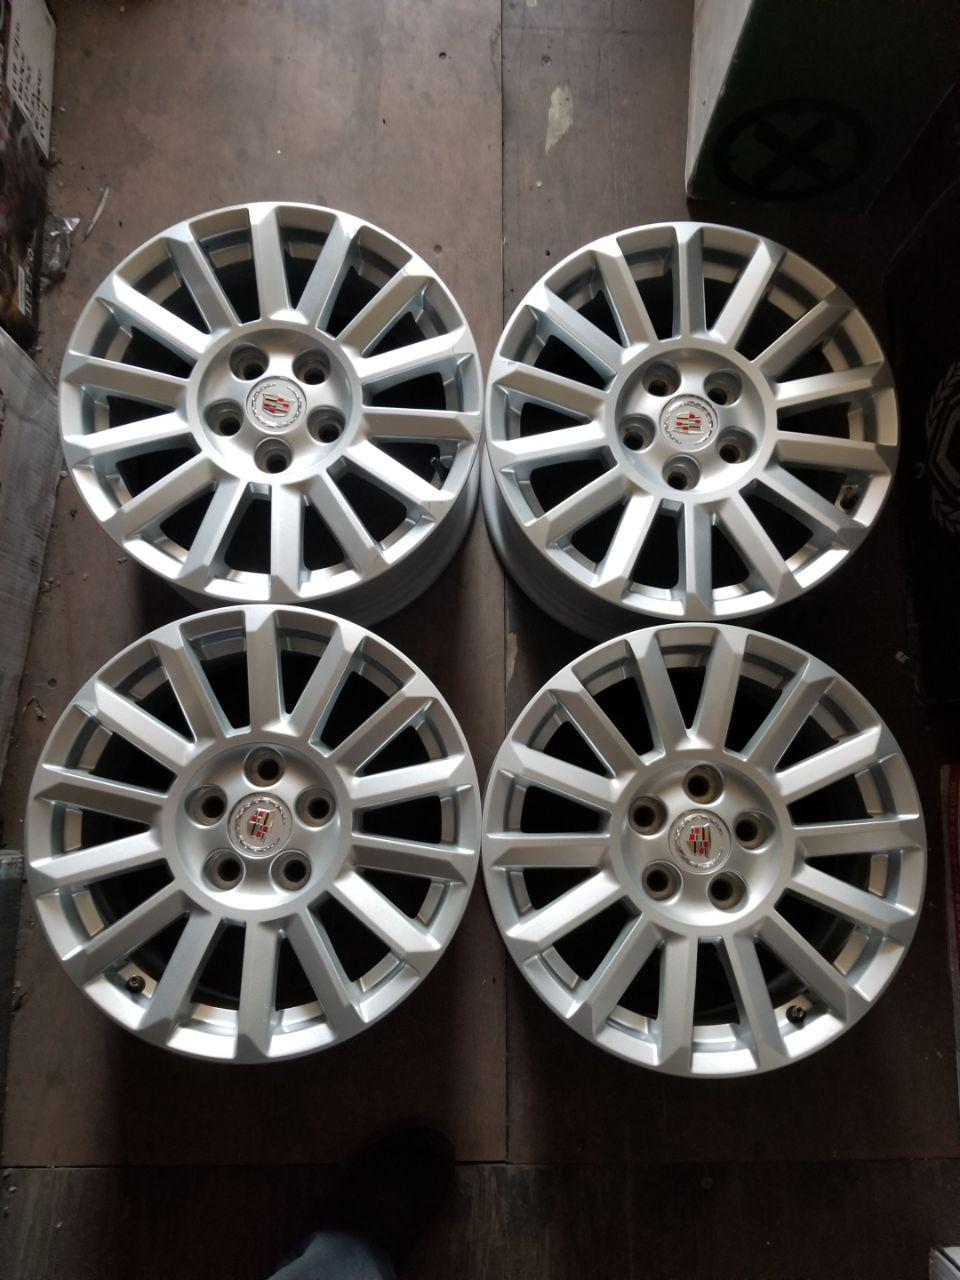 - OEM WHEELS - 2010-2013 CADILLAC CTS 17x8 14 SPOKE SILVER Hollander #4668 /  USED